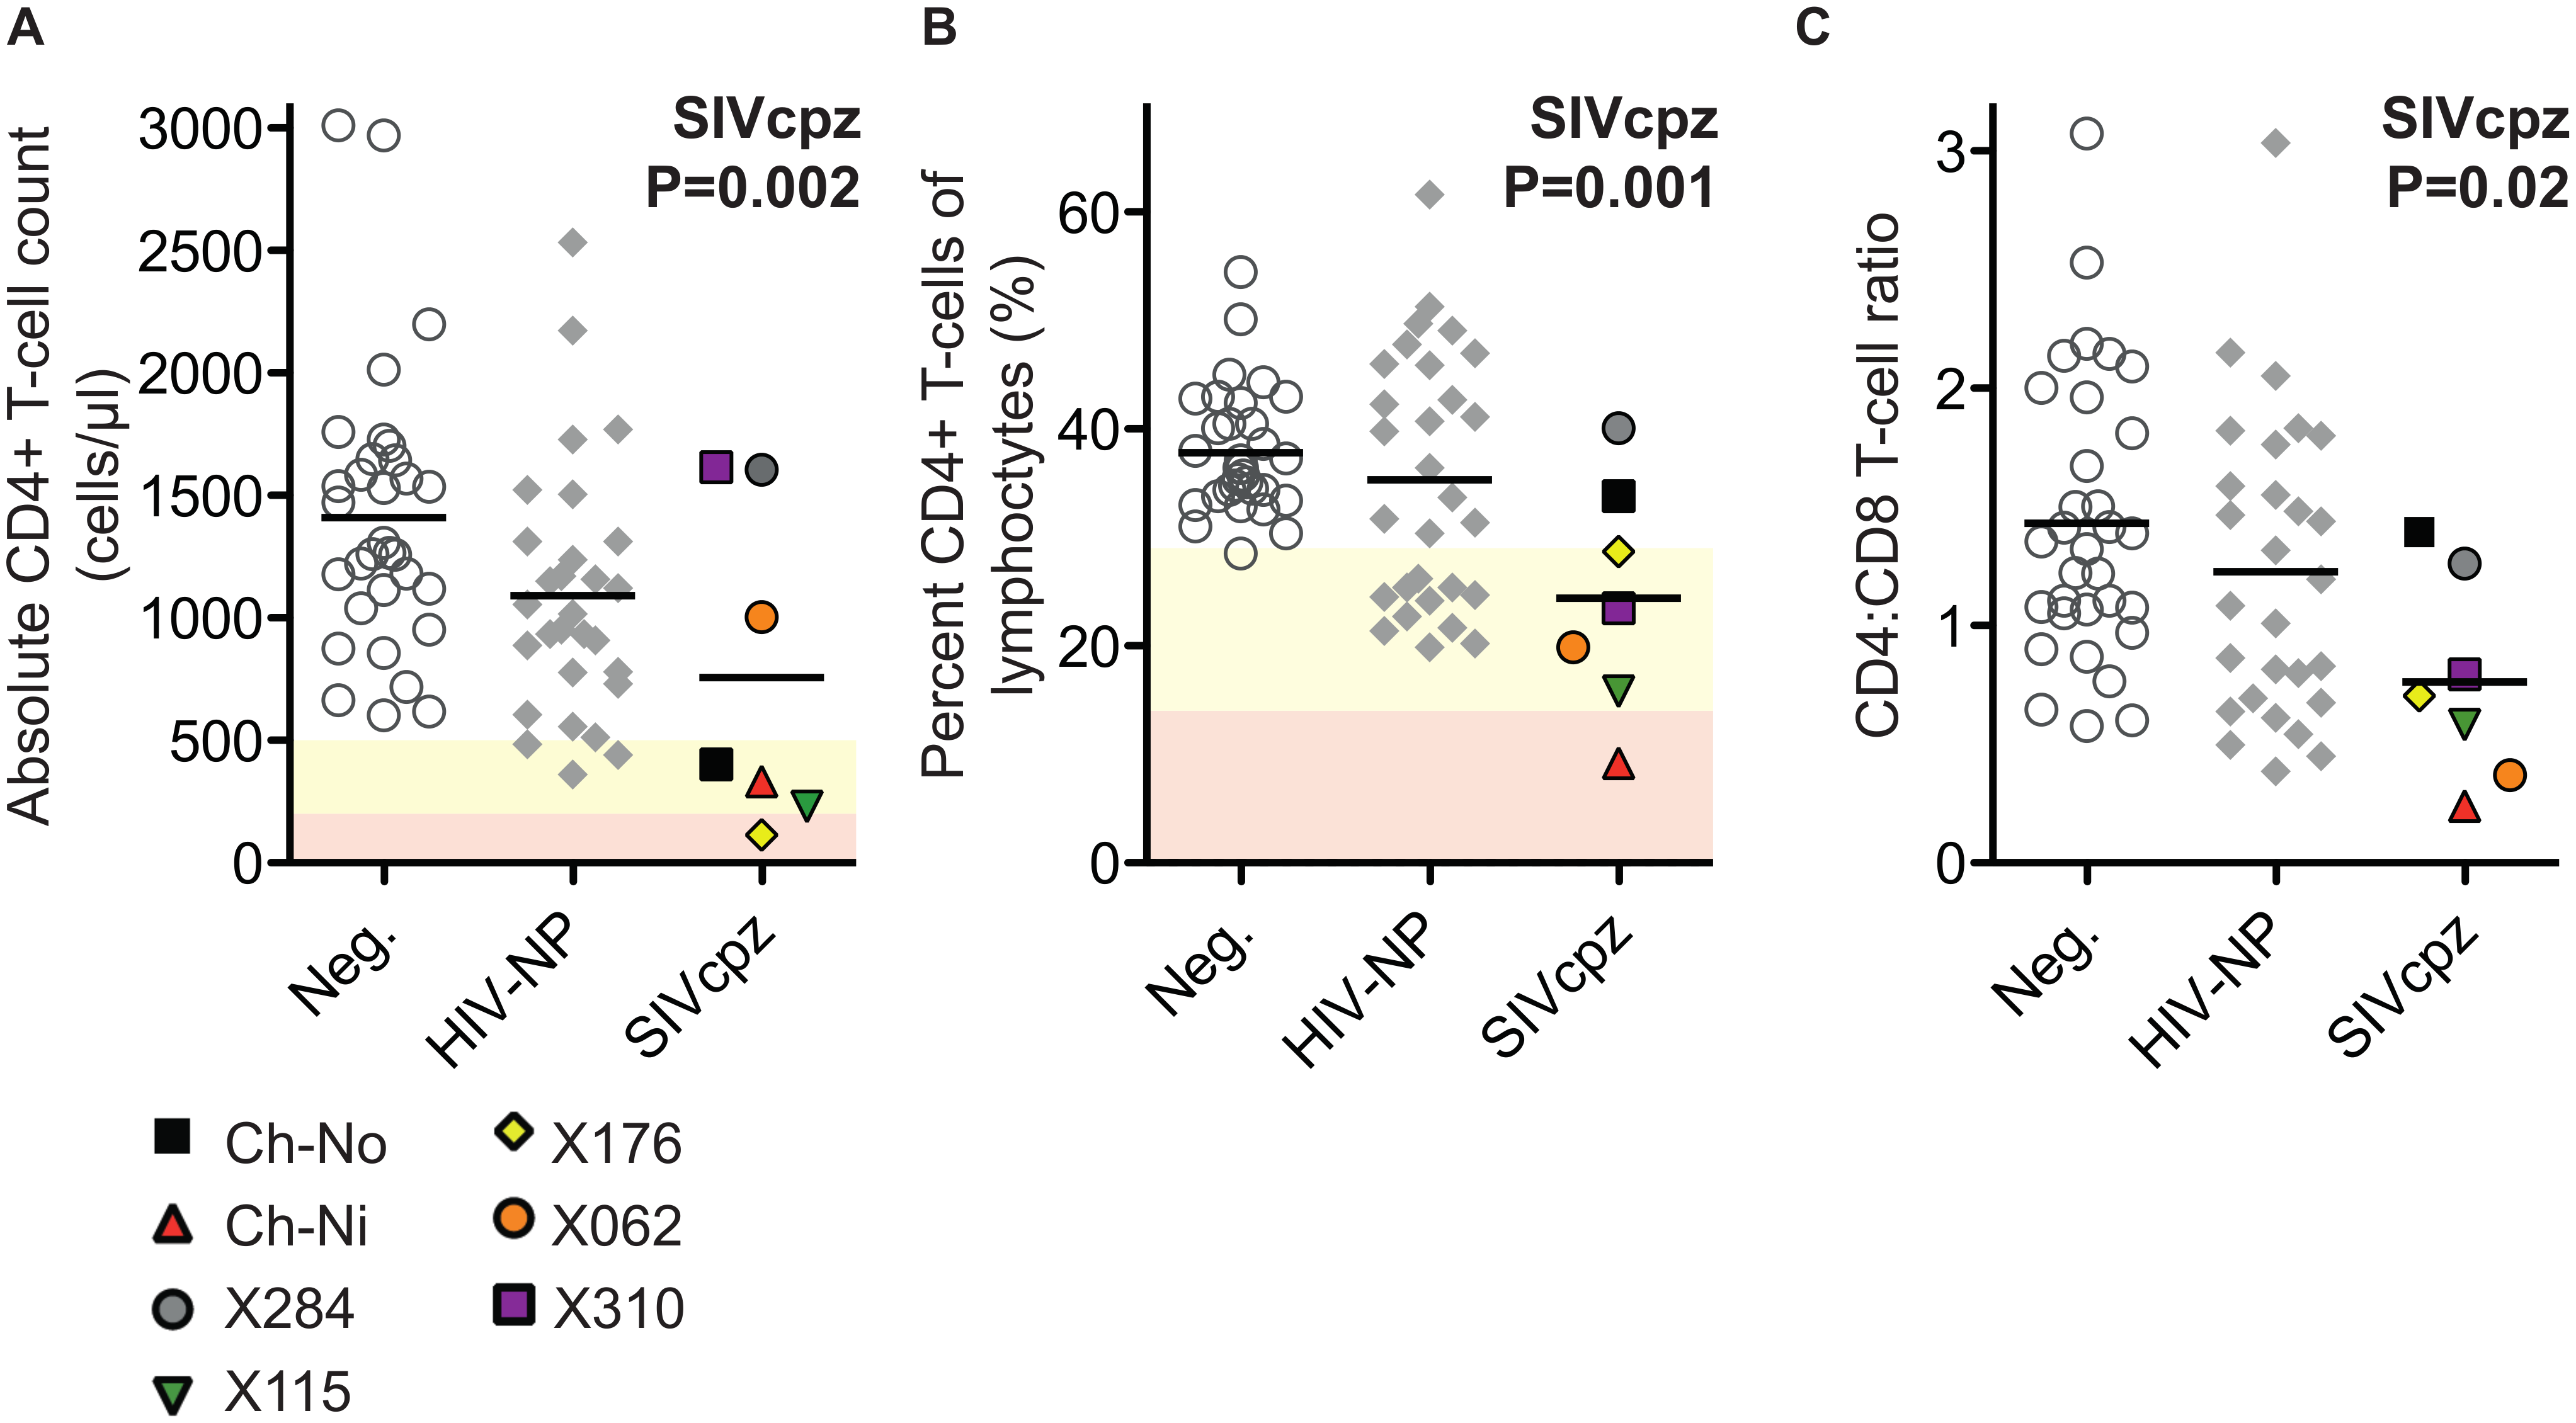 Comparison of CD4+ T-cell levels in uninfected, HIV-1 infected and SIVcpz infected animals.